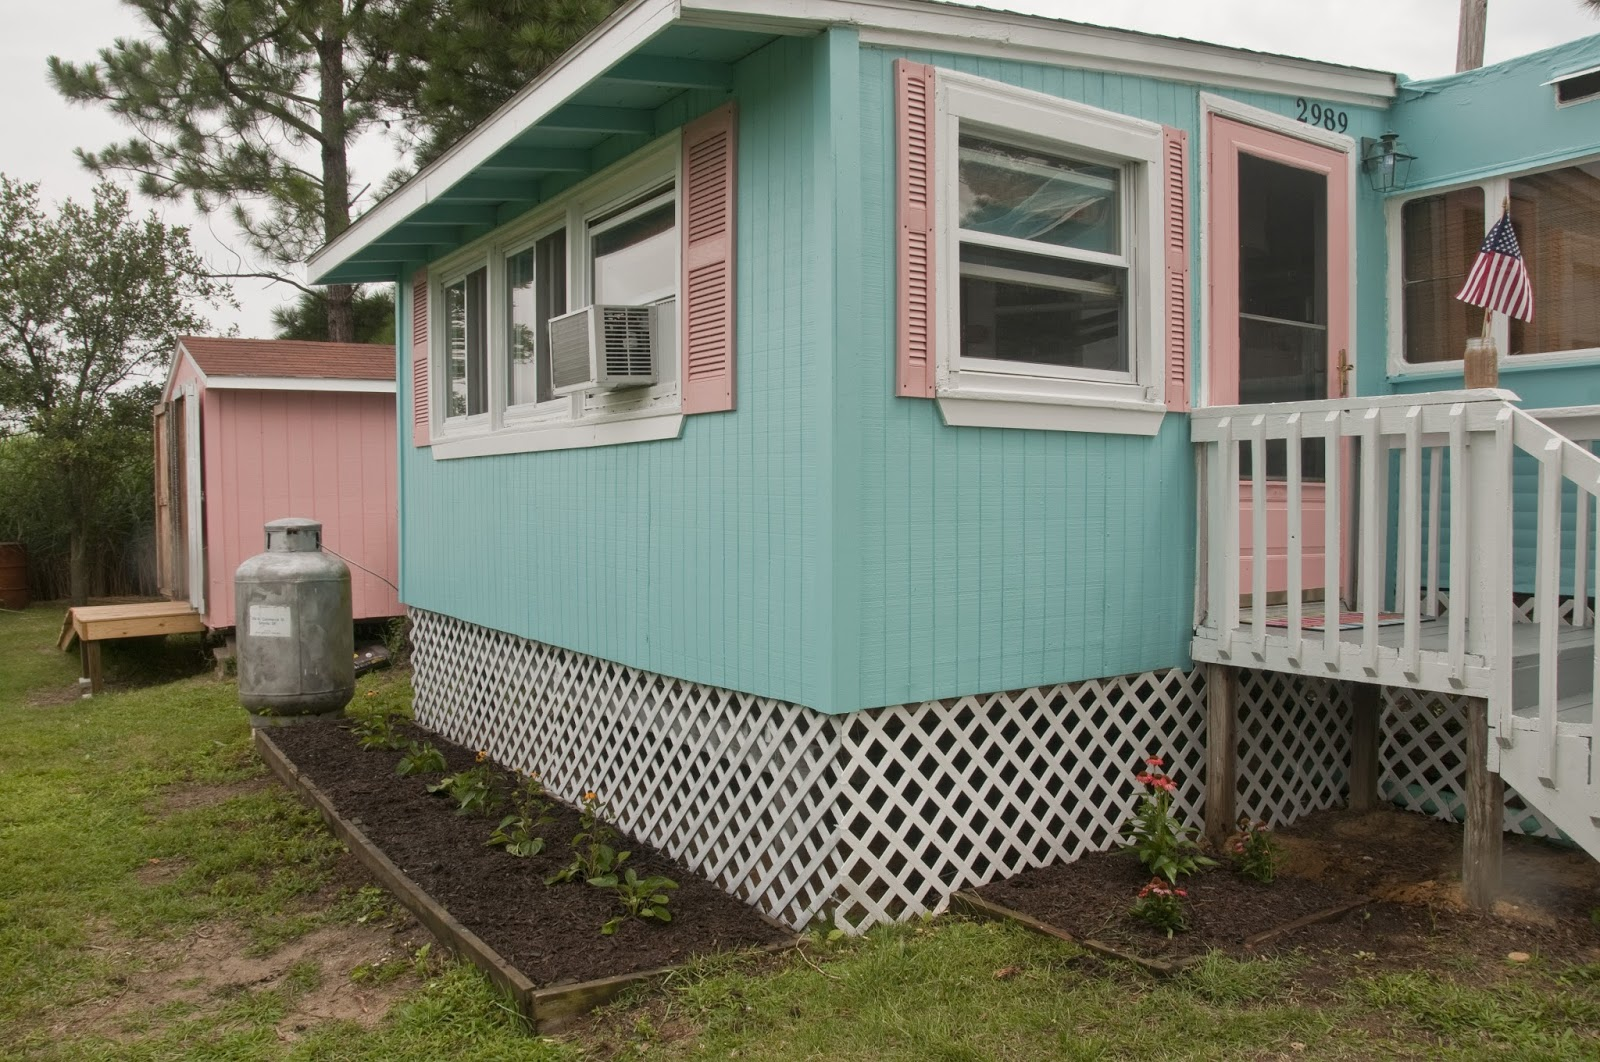 1952 ventoura mobile home remodel - Preview exterior house paint colors ...